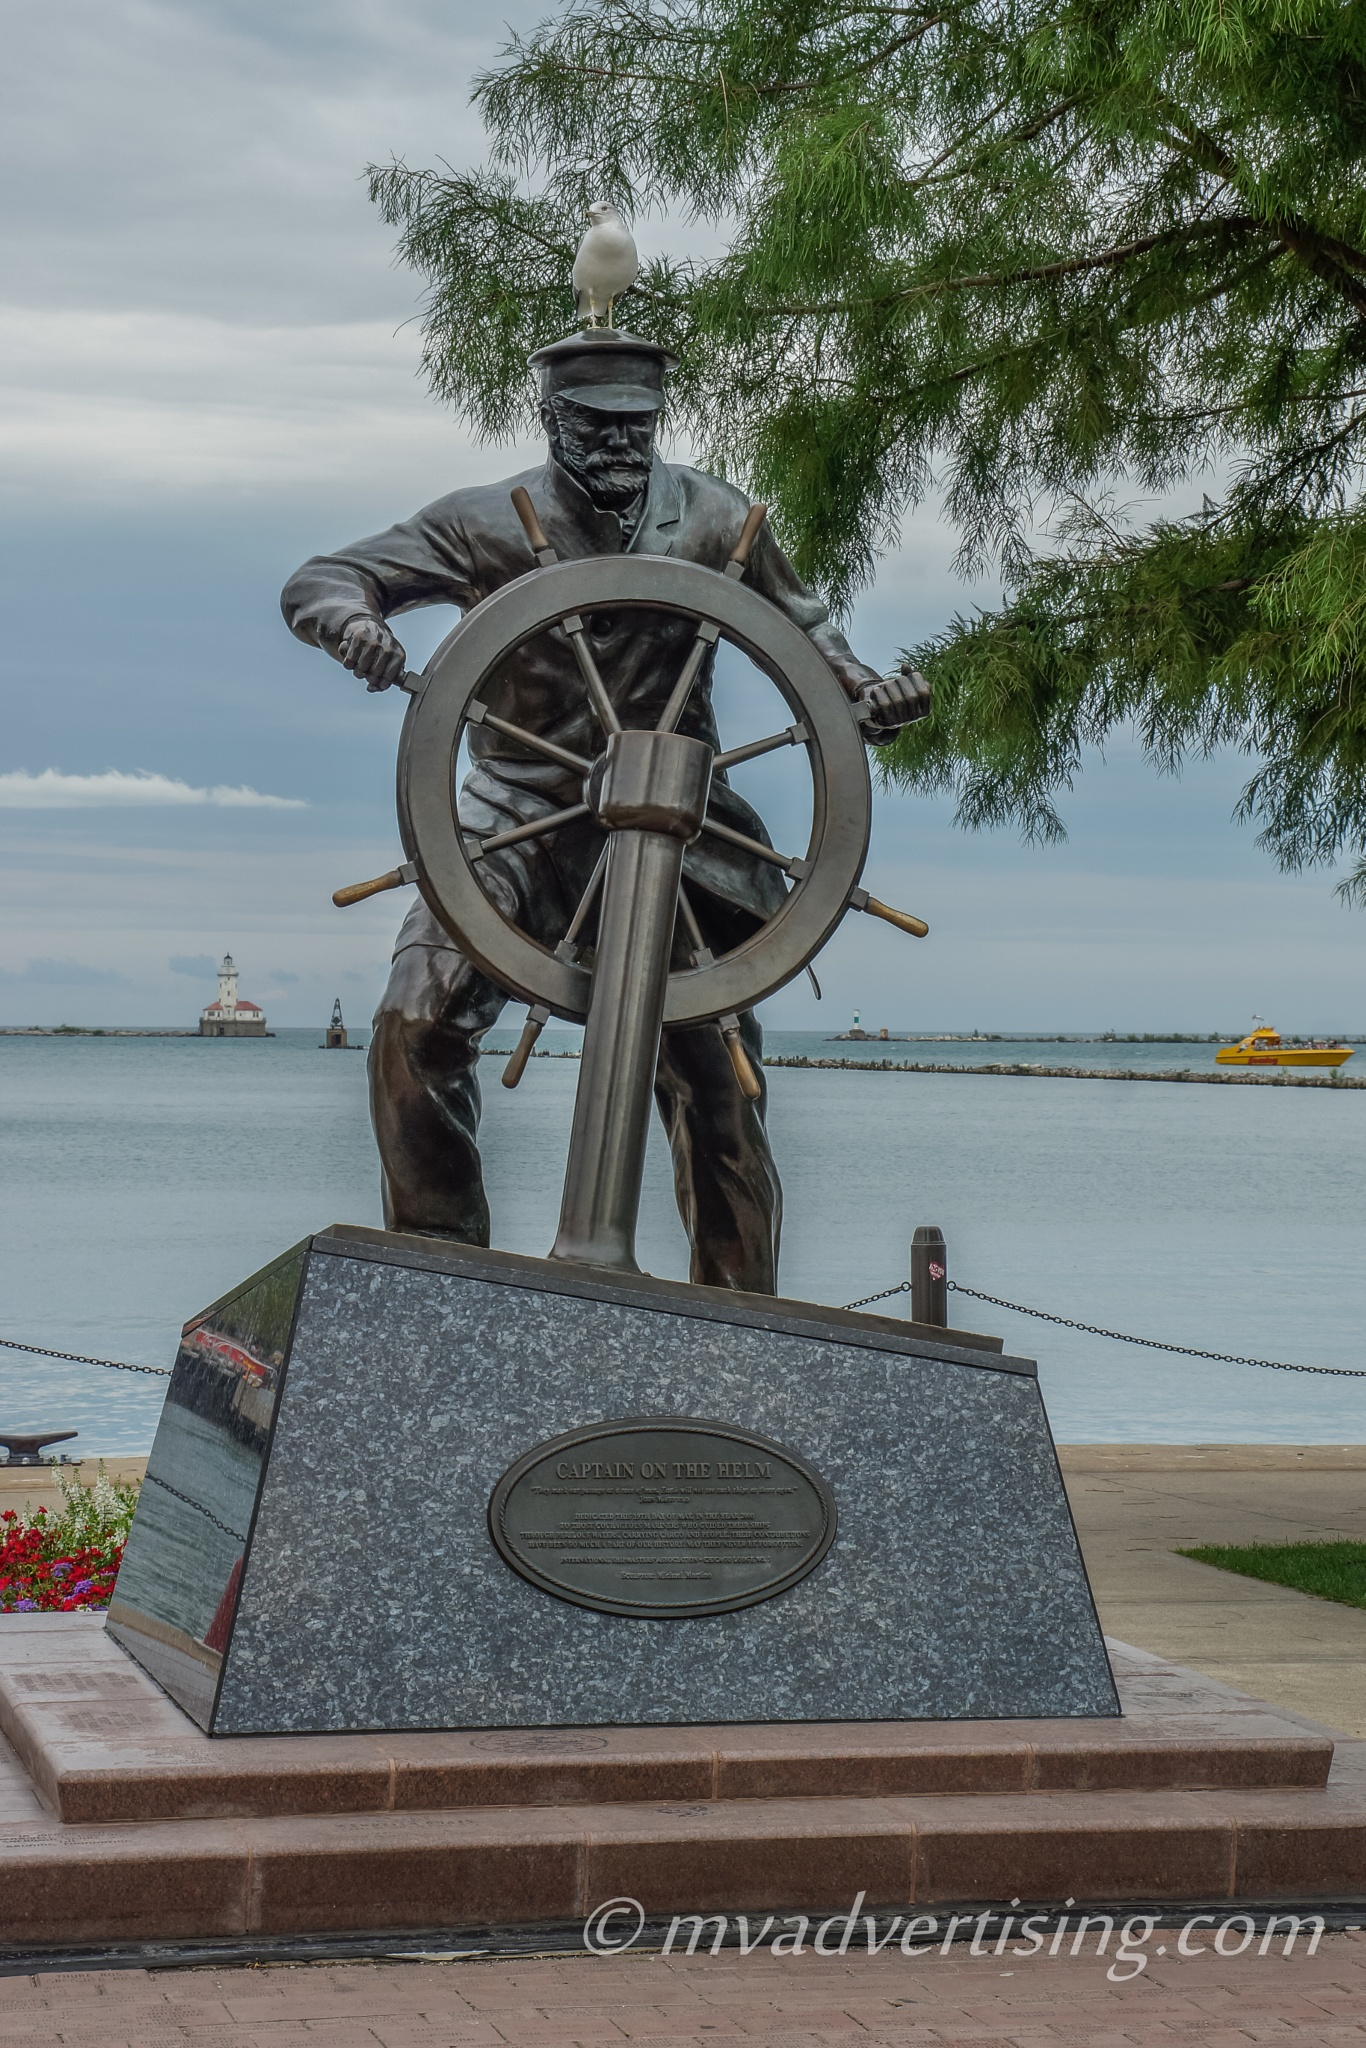 Sea Gull and the Sailor by joseph.m.frith